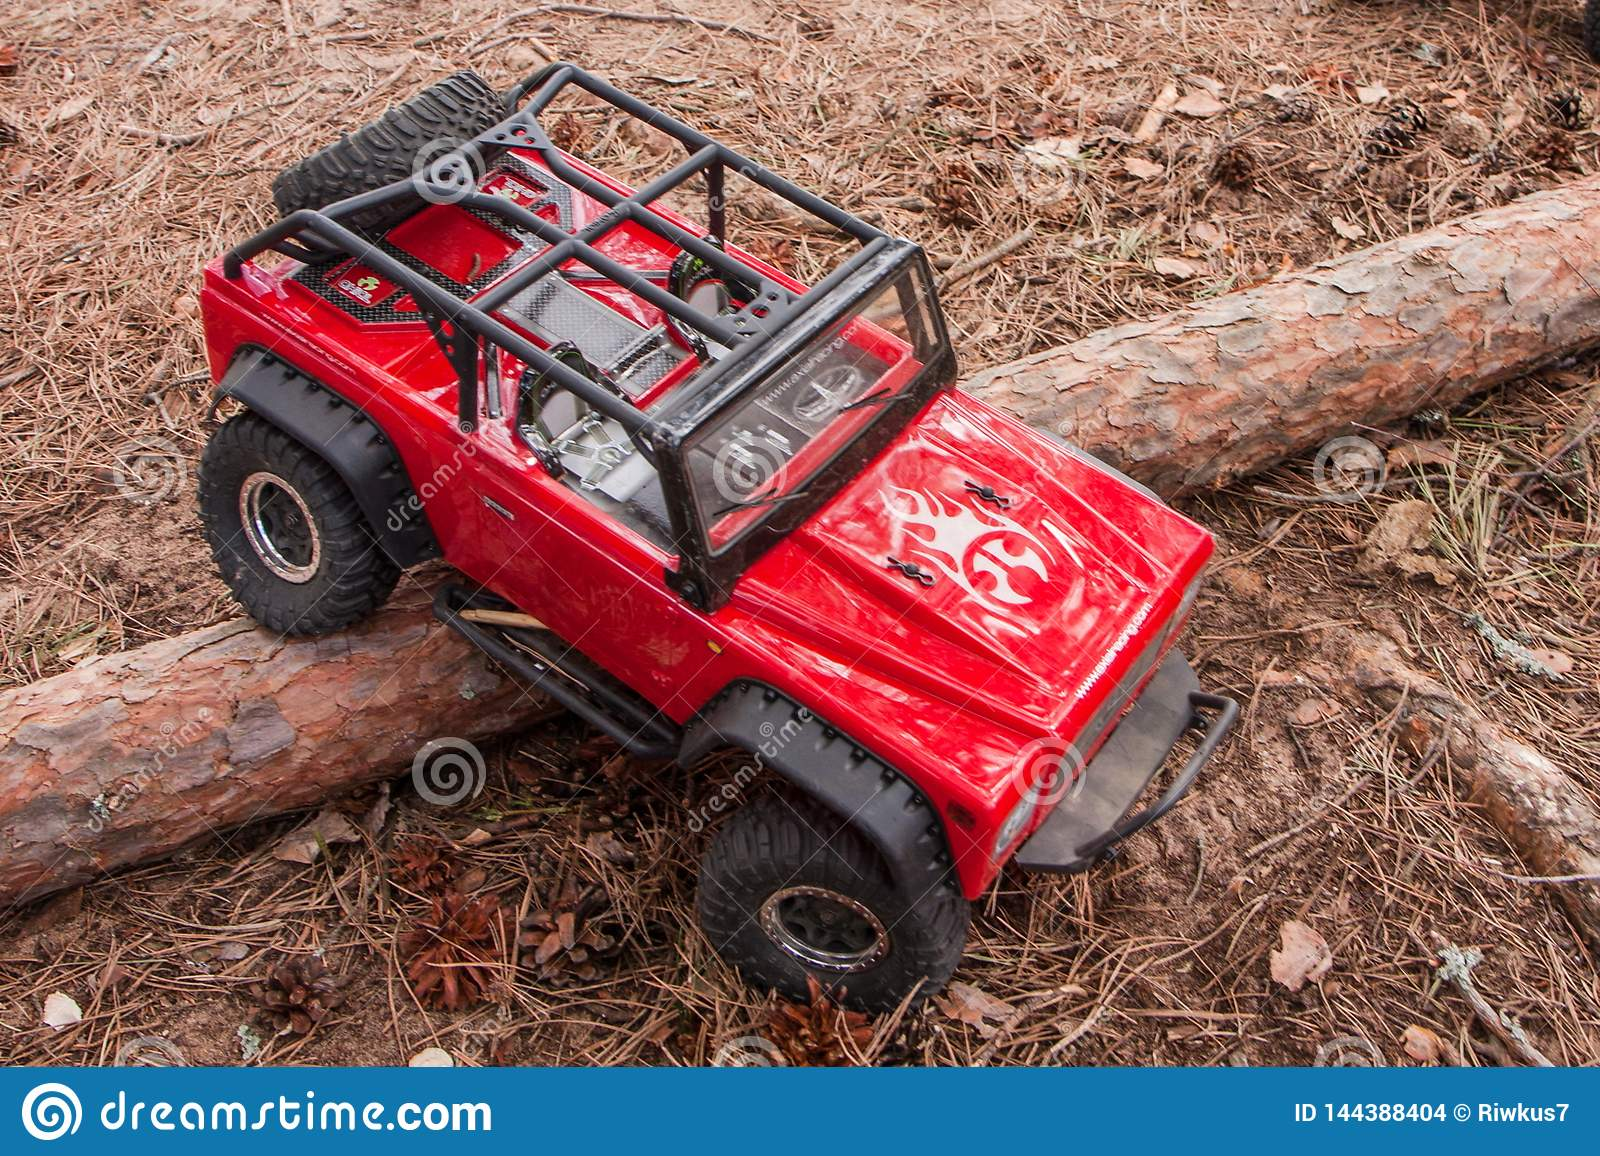 Kolyazin, Moscow region / Russian Federation - May 1 2014: RC car trophy crowler Jeep moves over an obstacle in the form